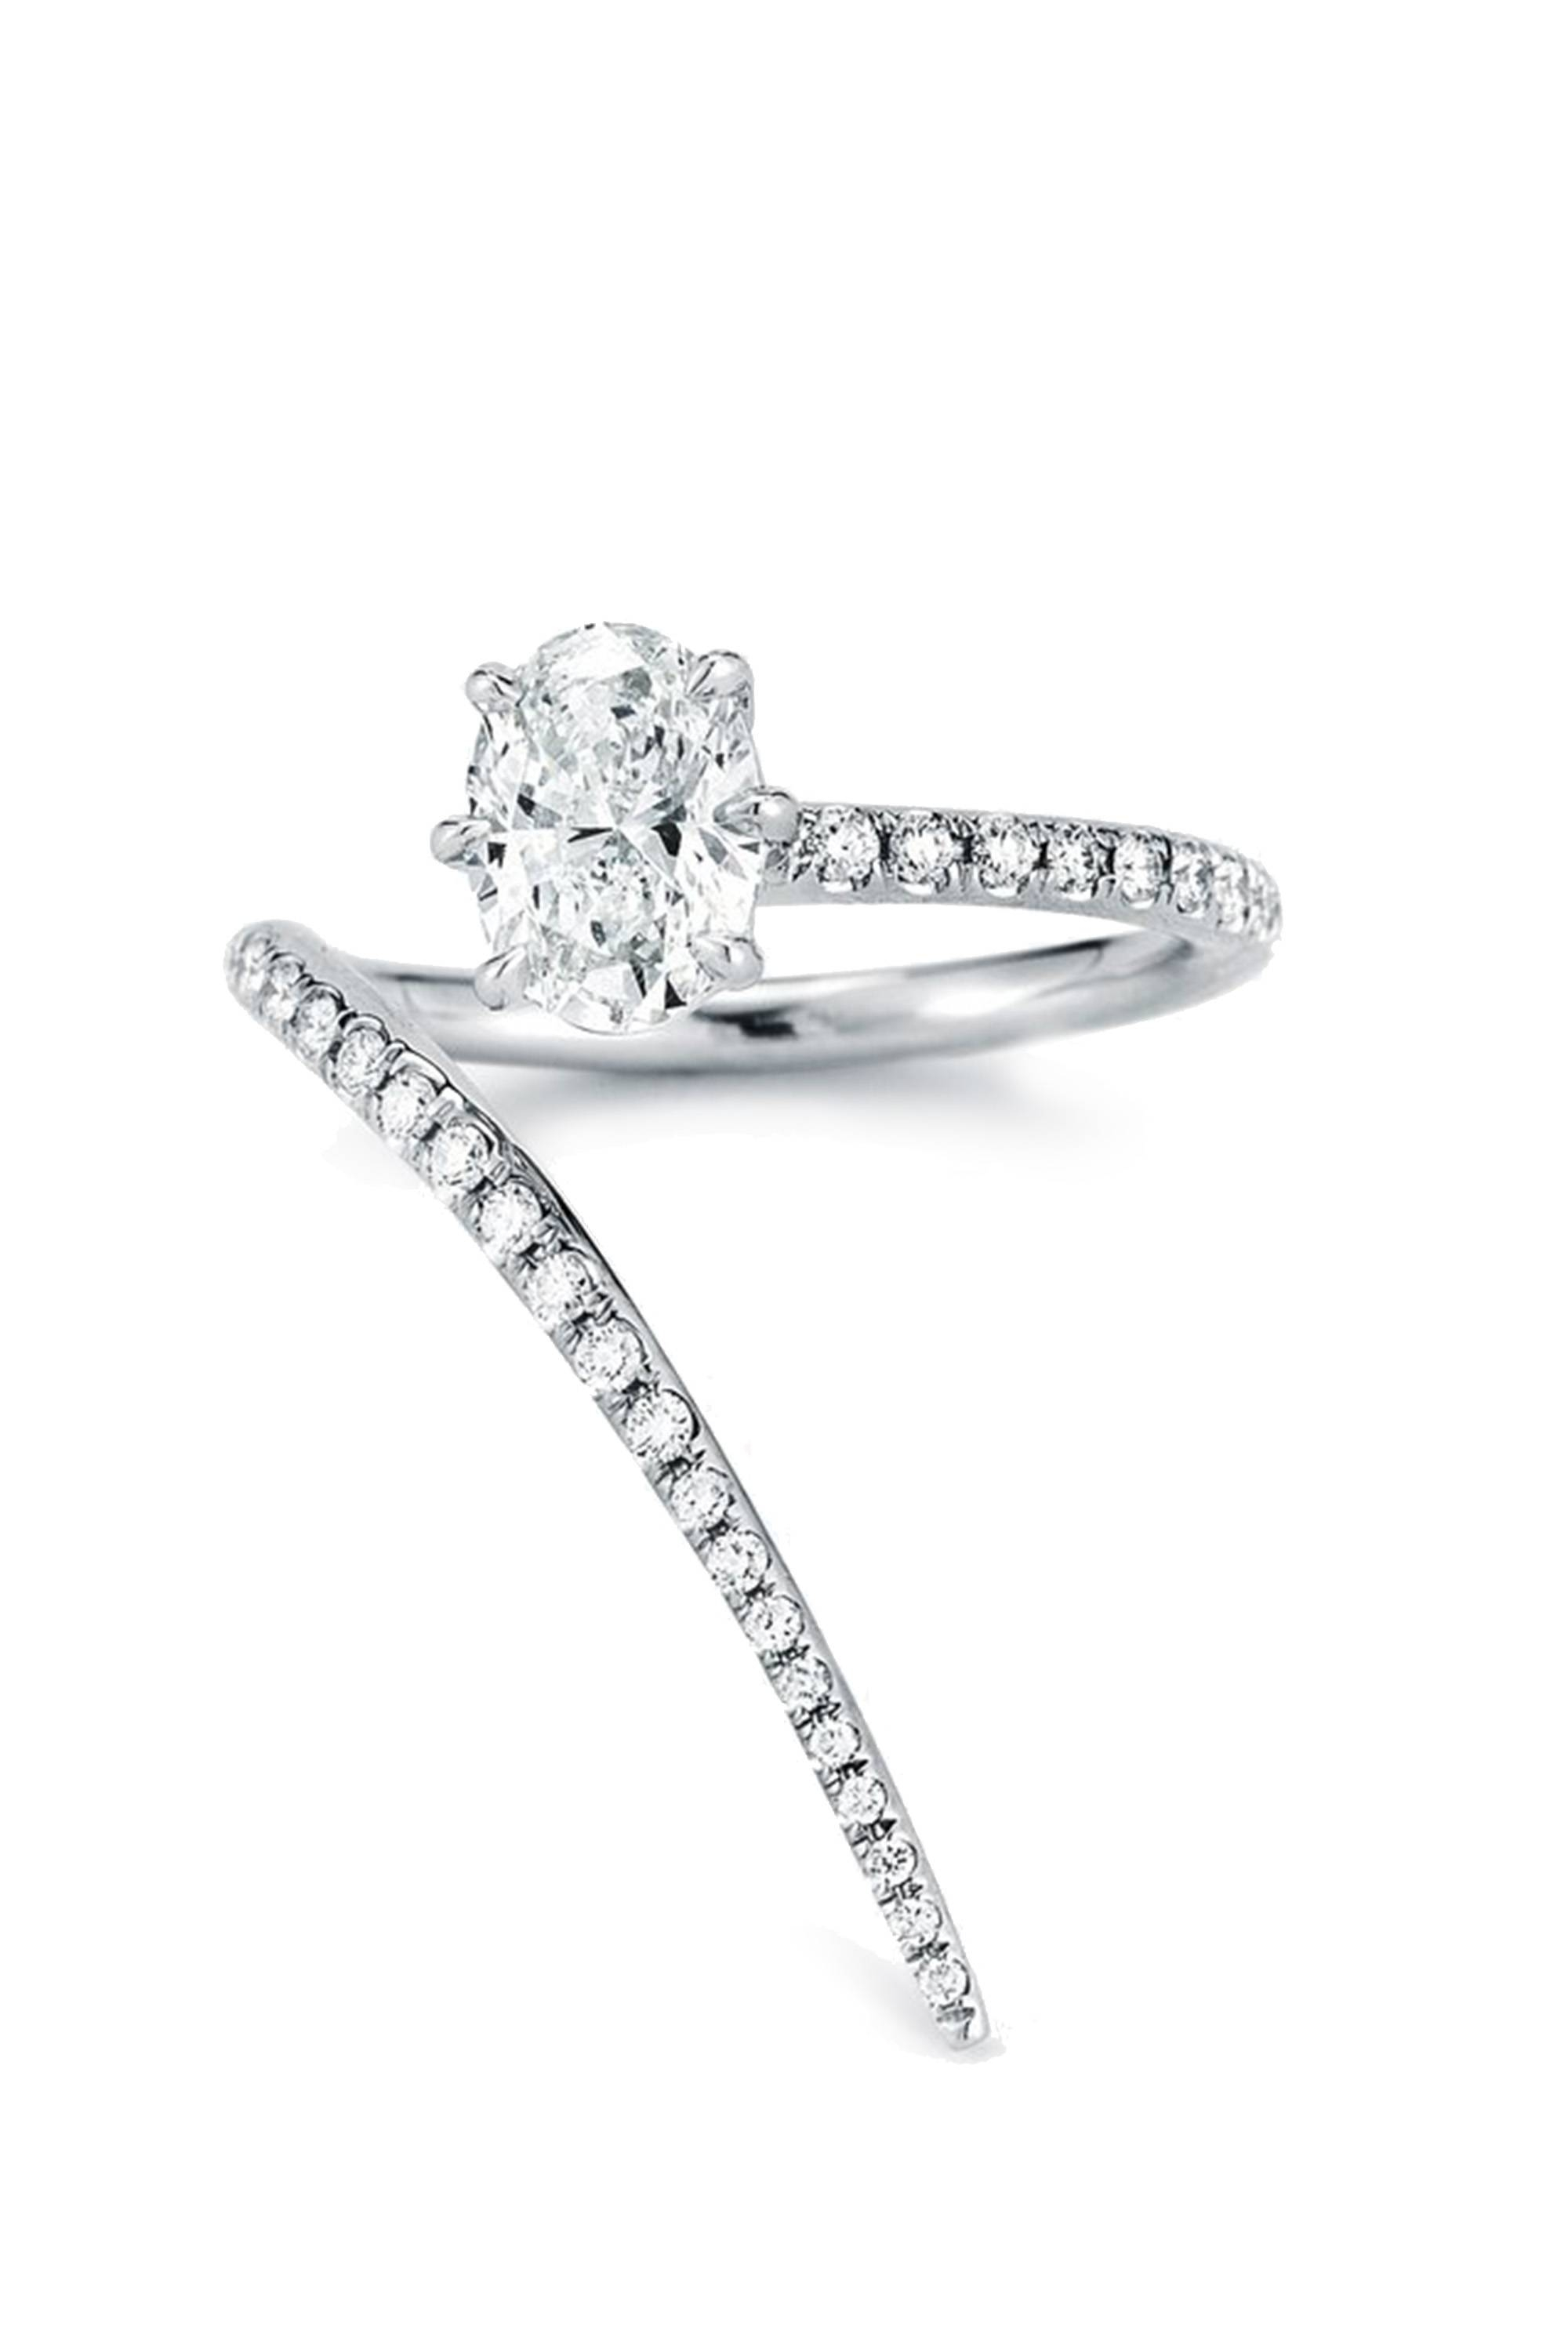 41 Unique Engagement Rings – Beautiful Non Diamond And Unusual Within Unique Engagement Rings (View 6 of 15)